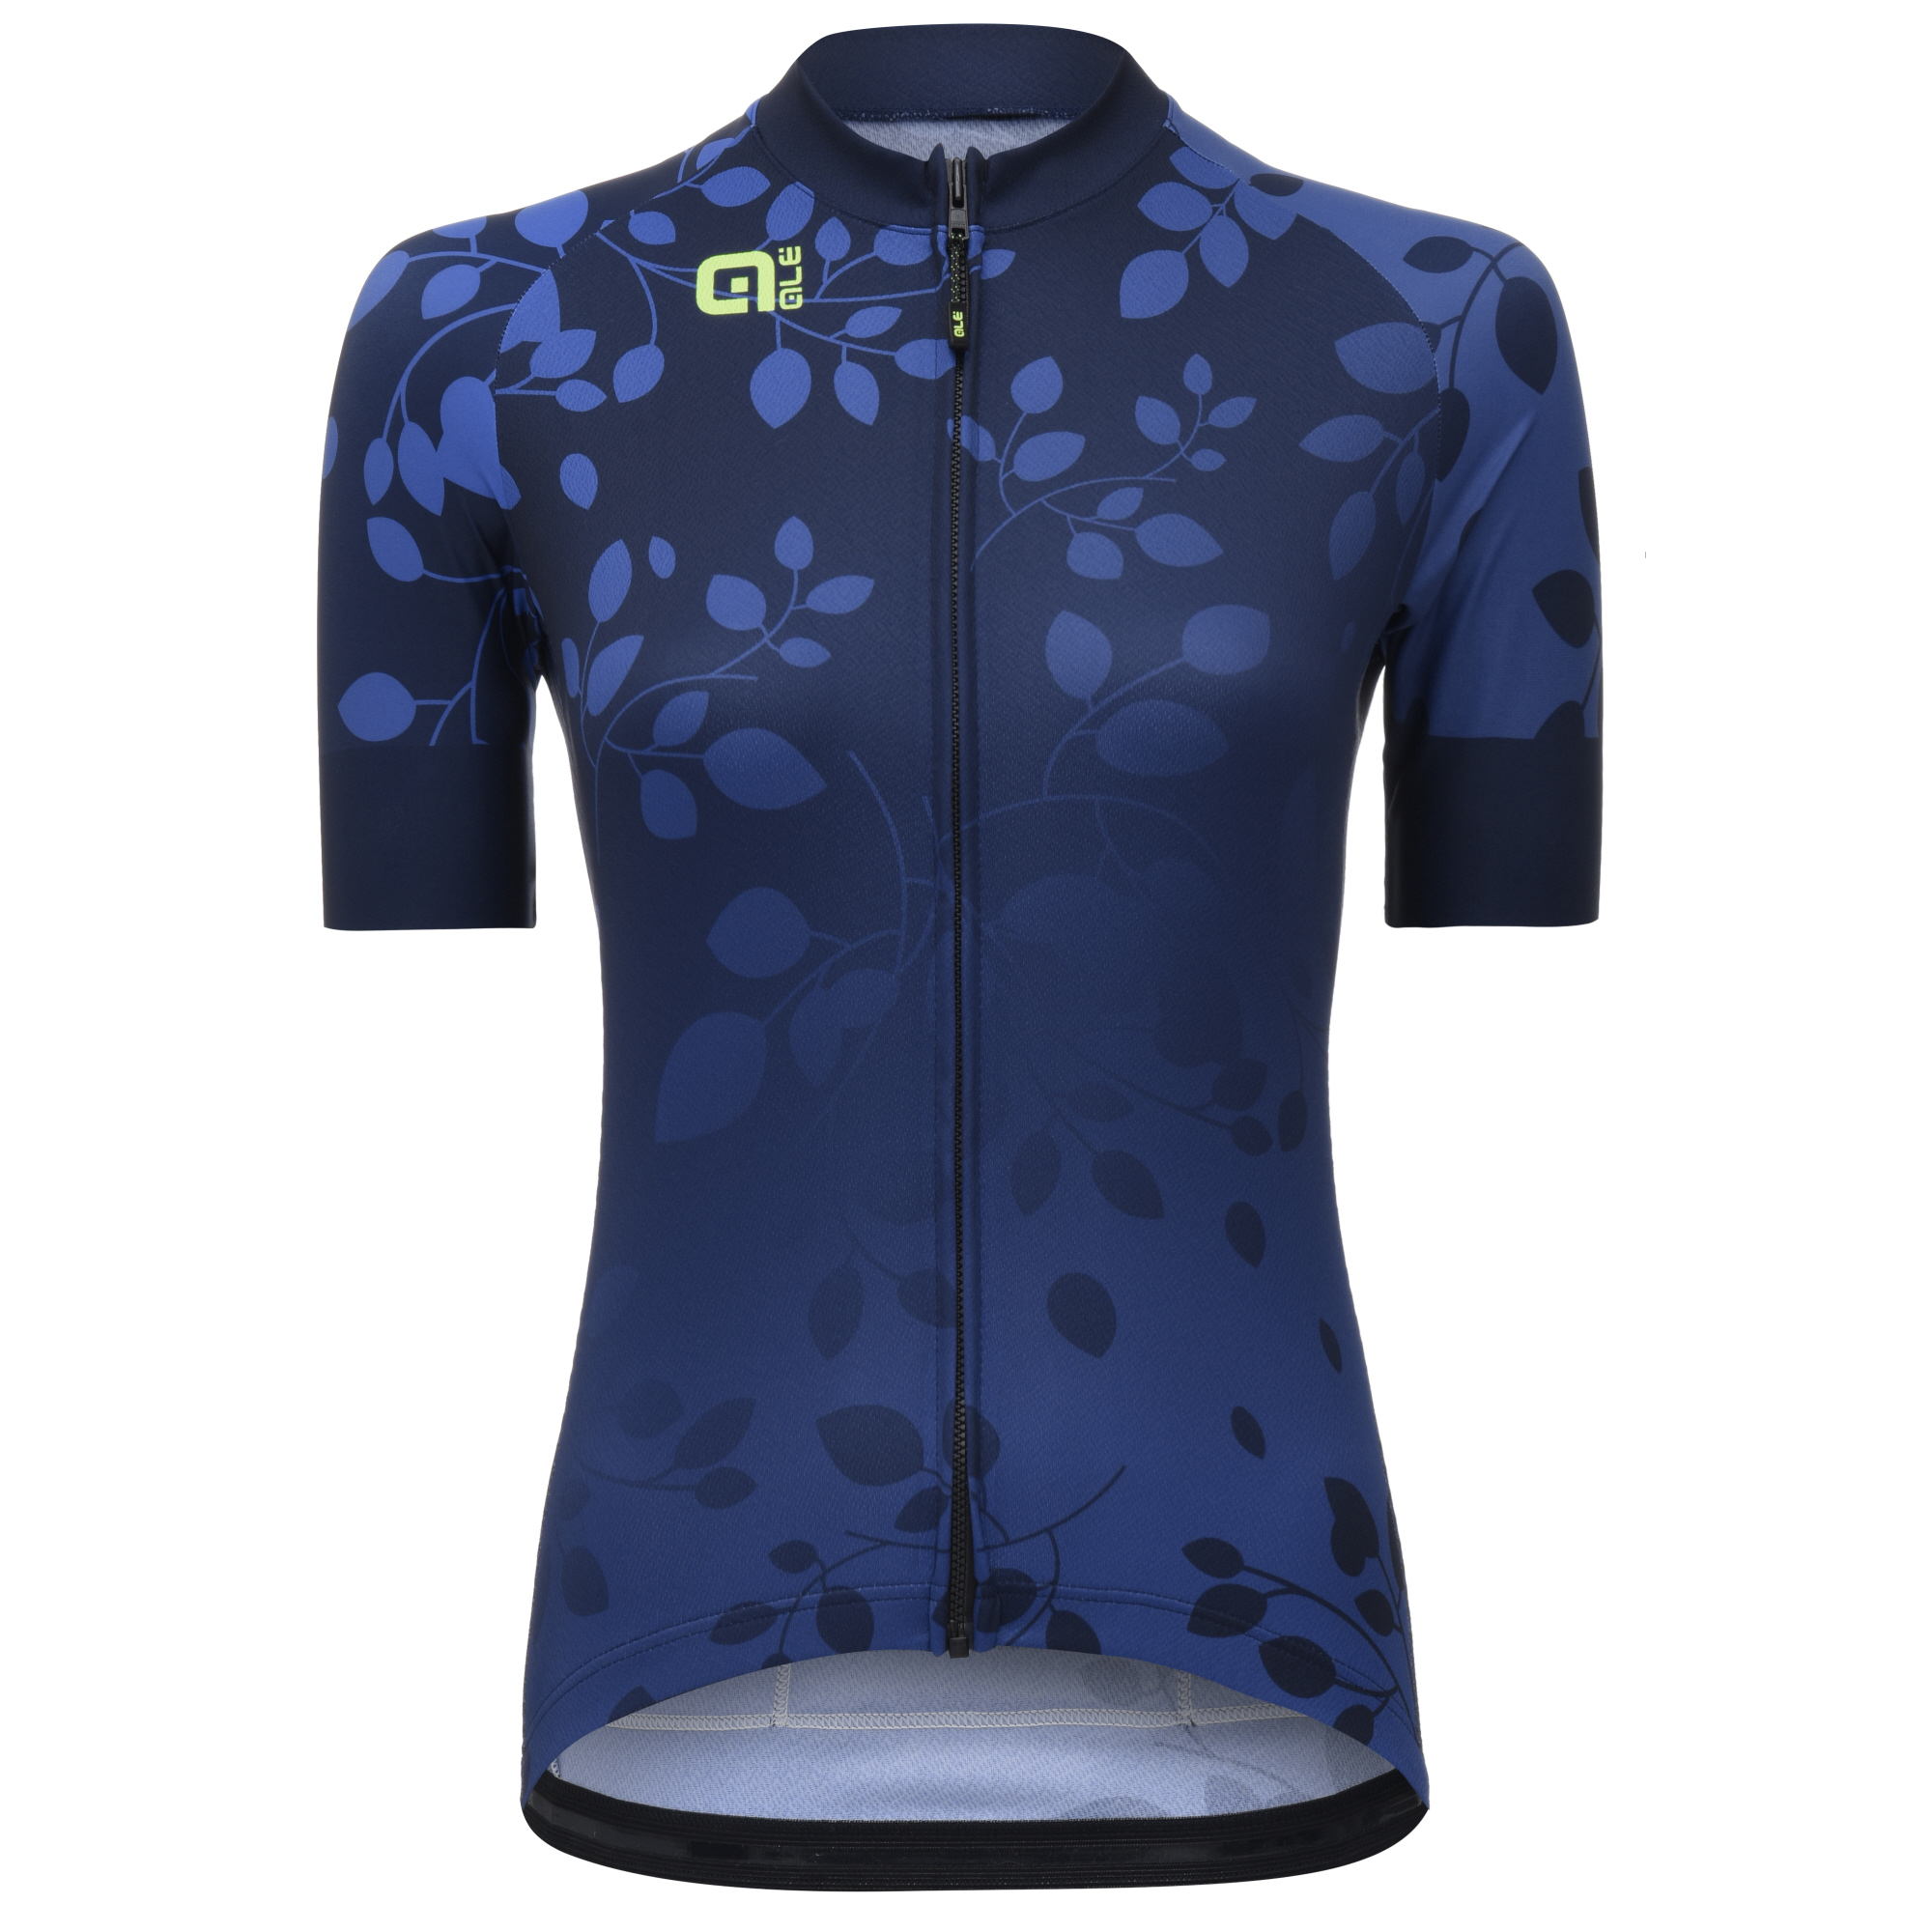 Alé Women's Back to Nature Leaves Jersey | Jerseys